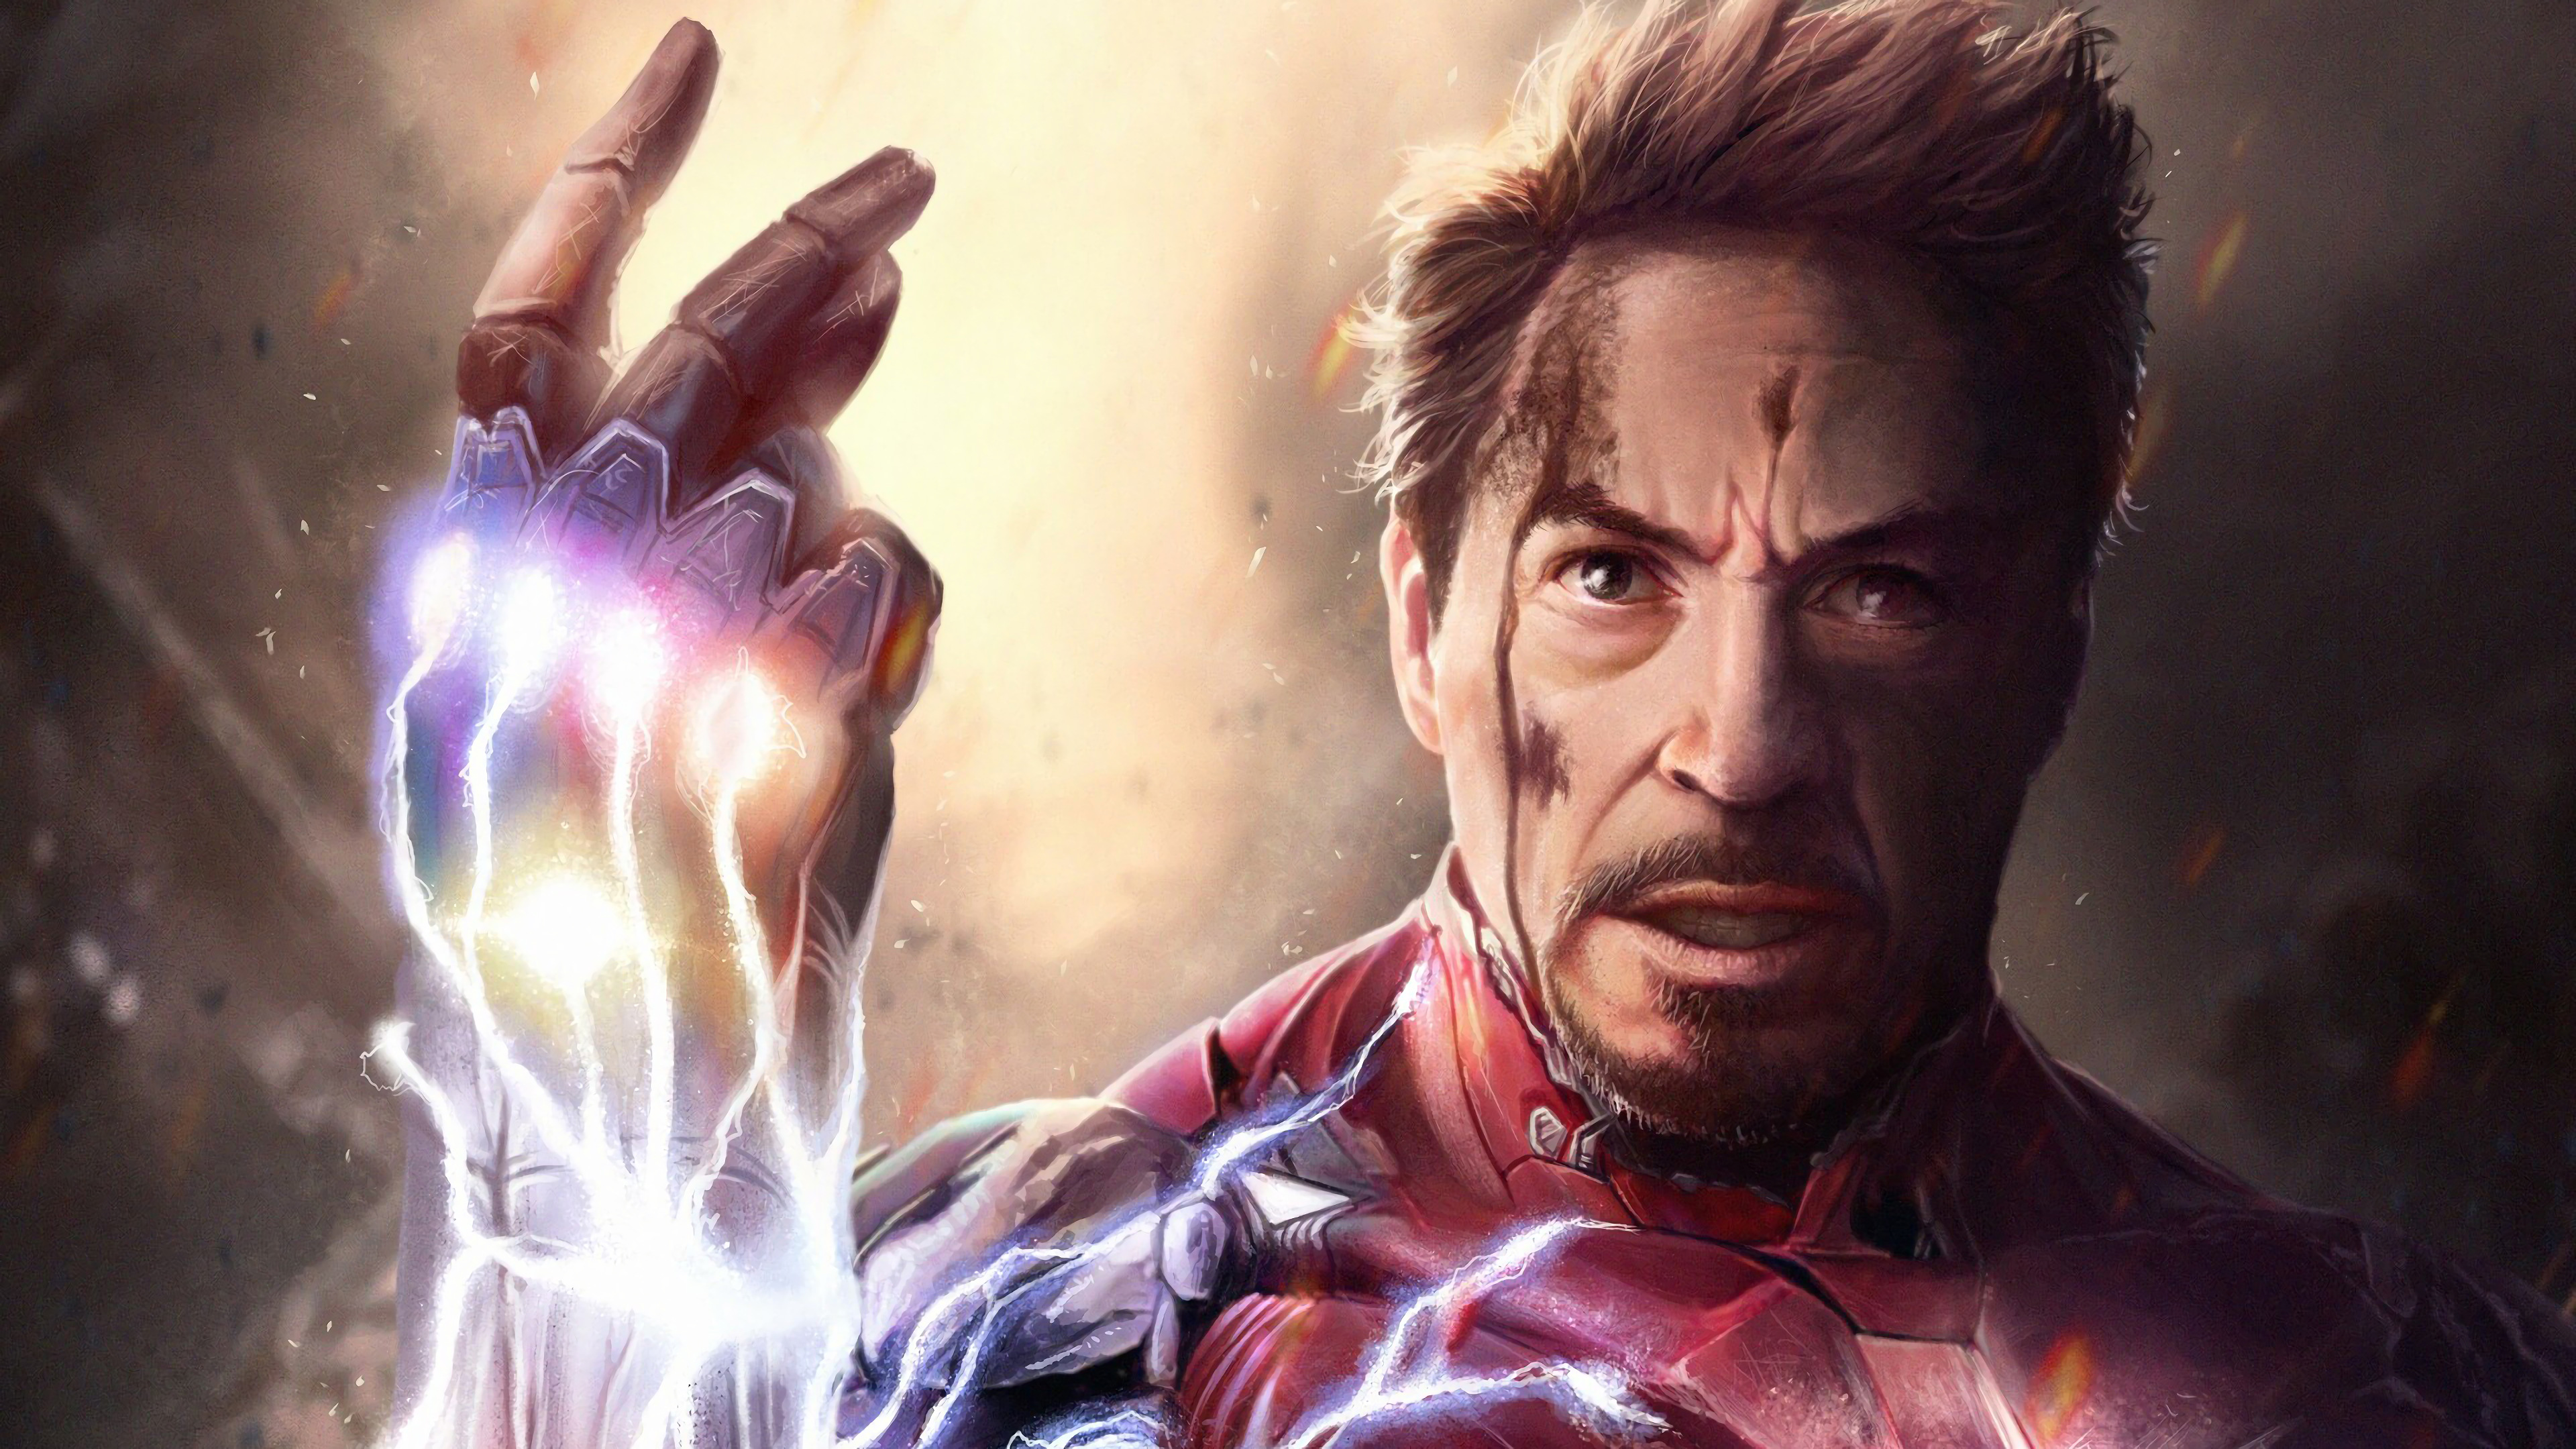 Iron Man Snap Infinity Stones Avengers Endgame 4k Wallpaper 175